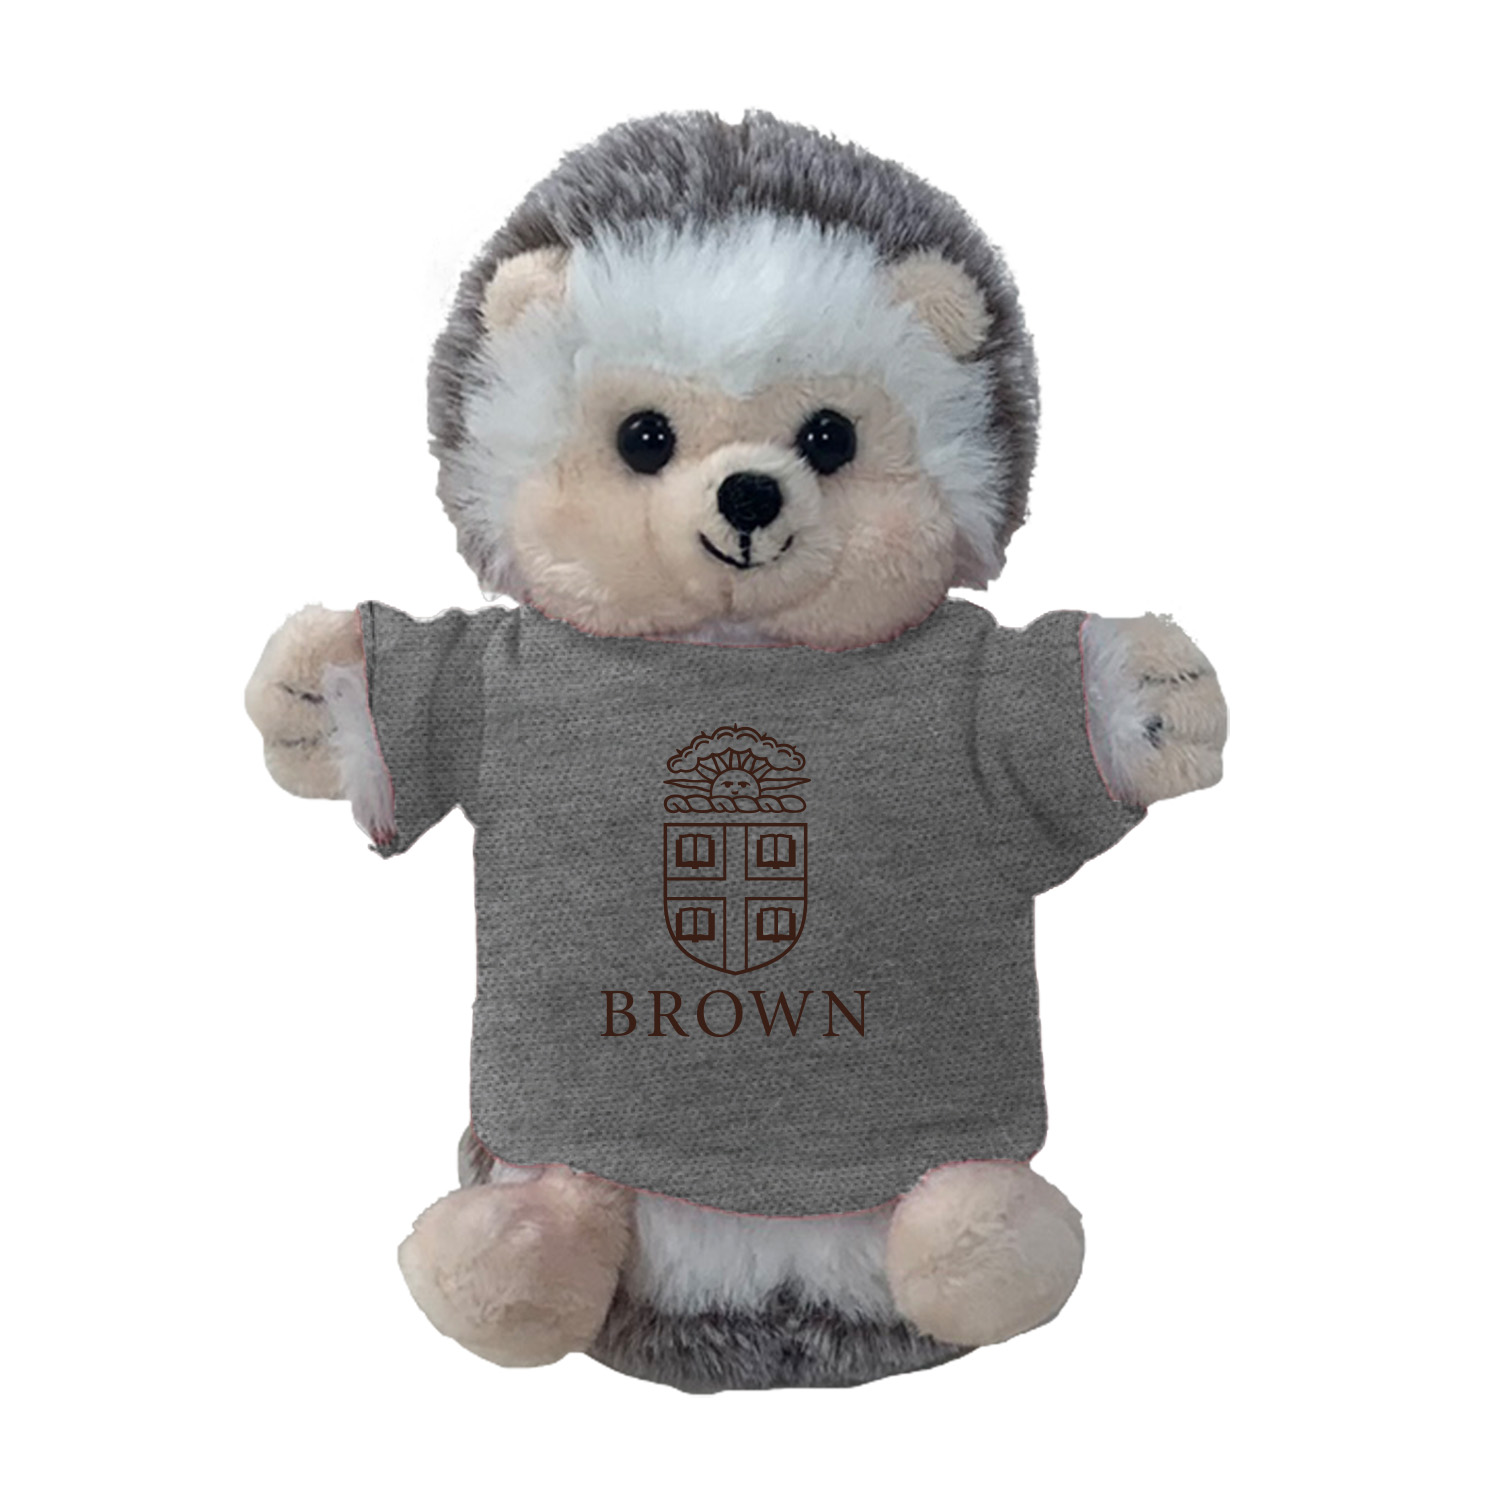 Image For Mascot Factory Plush - Cheeky Hedgehog w/Brown Tee